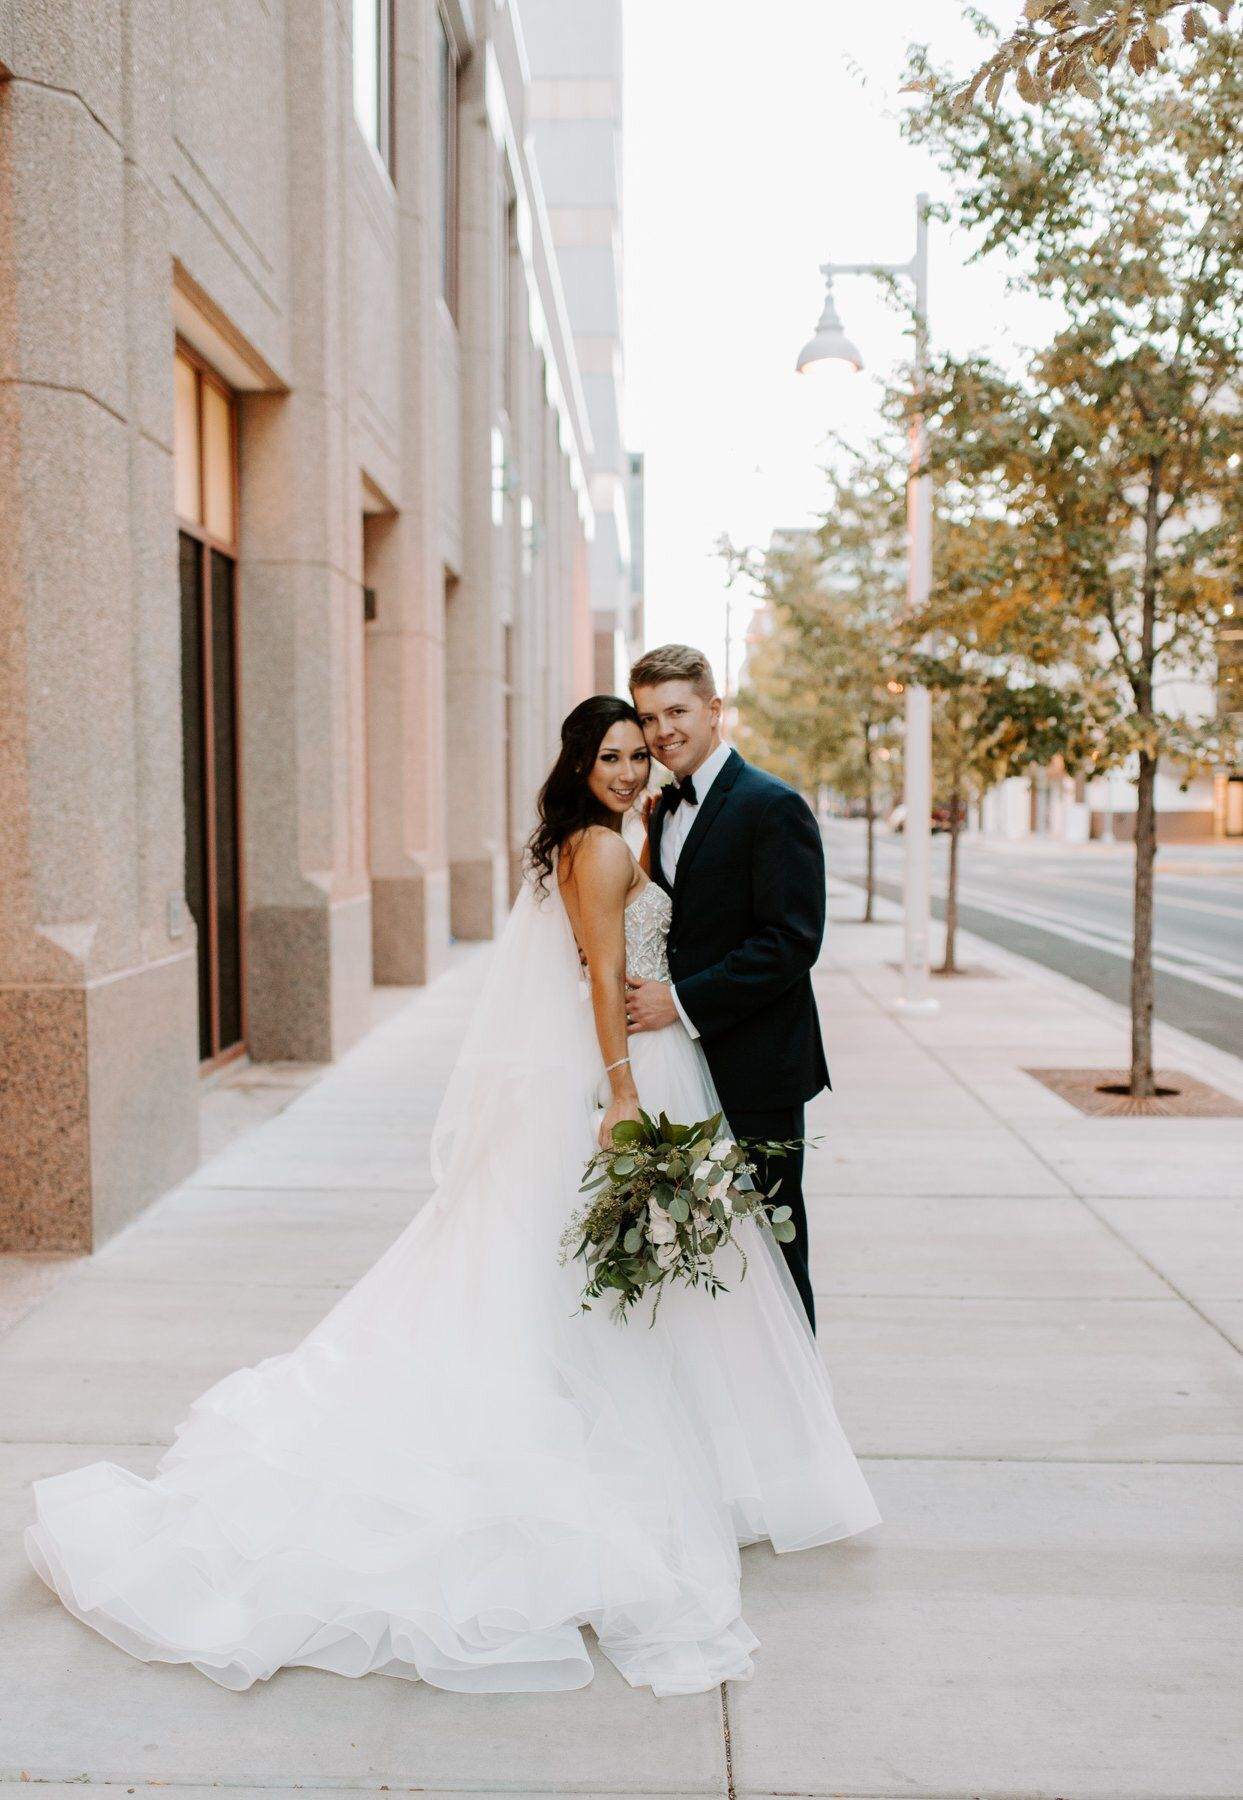 4f73e7605fec6 ... #ballgown from J Bridal Boutique in Tucson, Arizona/ Albuquerque, New  Mexico Hyatt Regency wedding / #weddingphotography by Brittney Mundy Photo